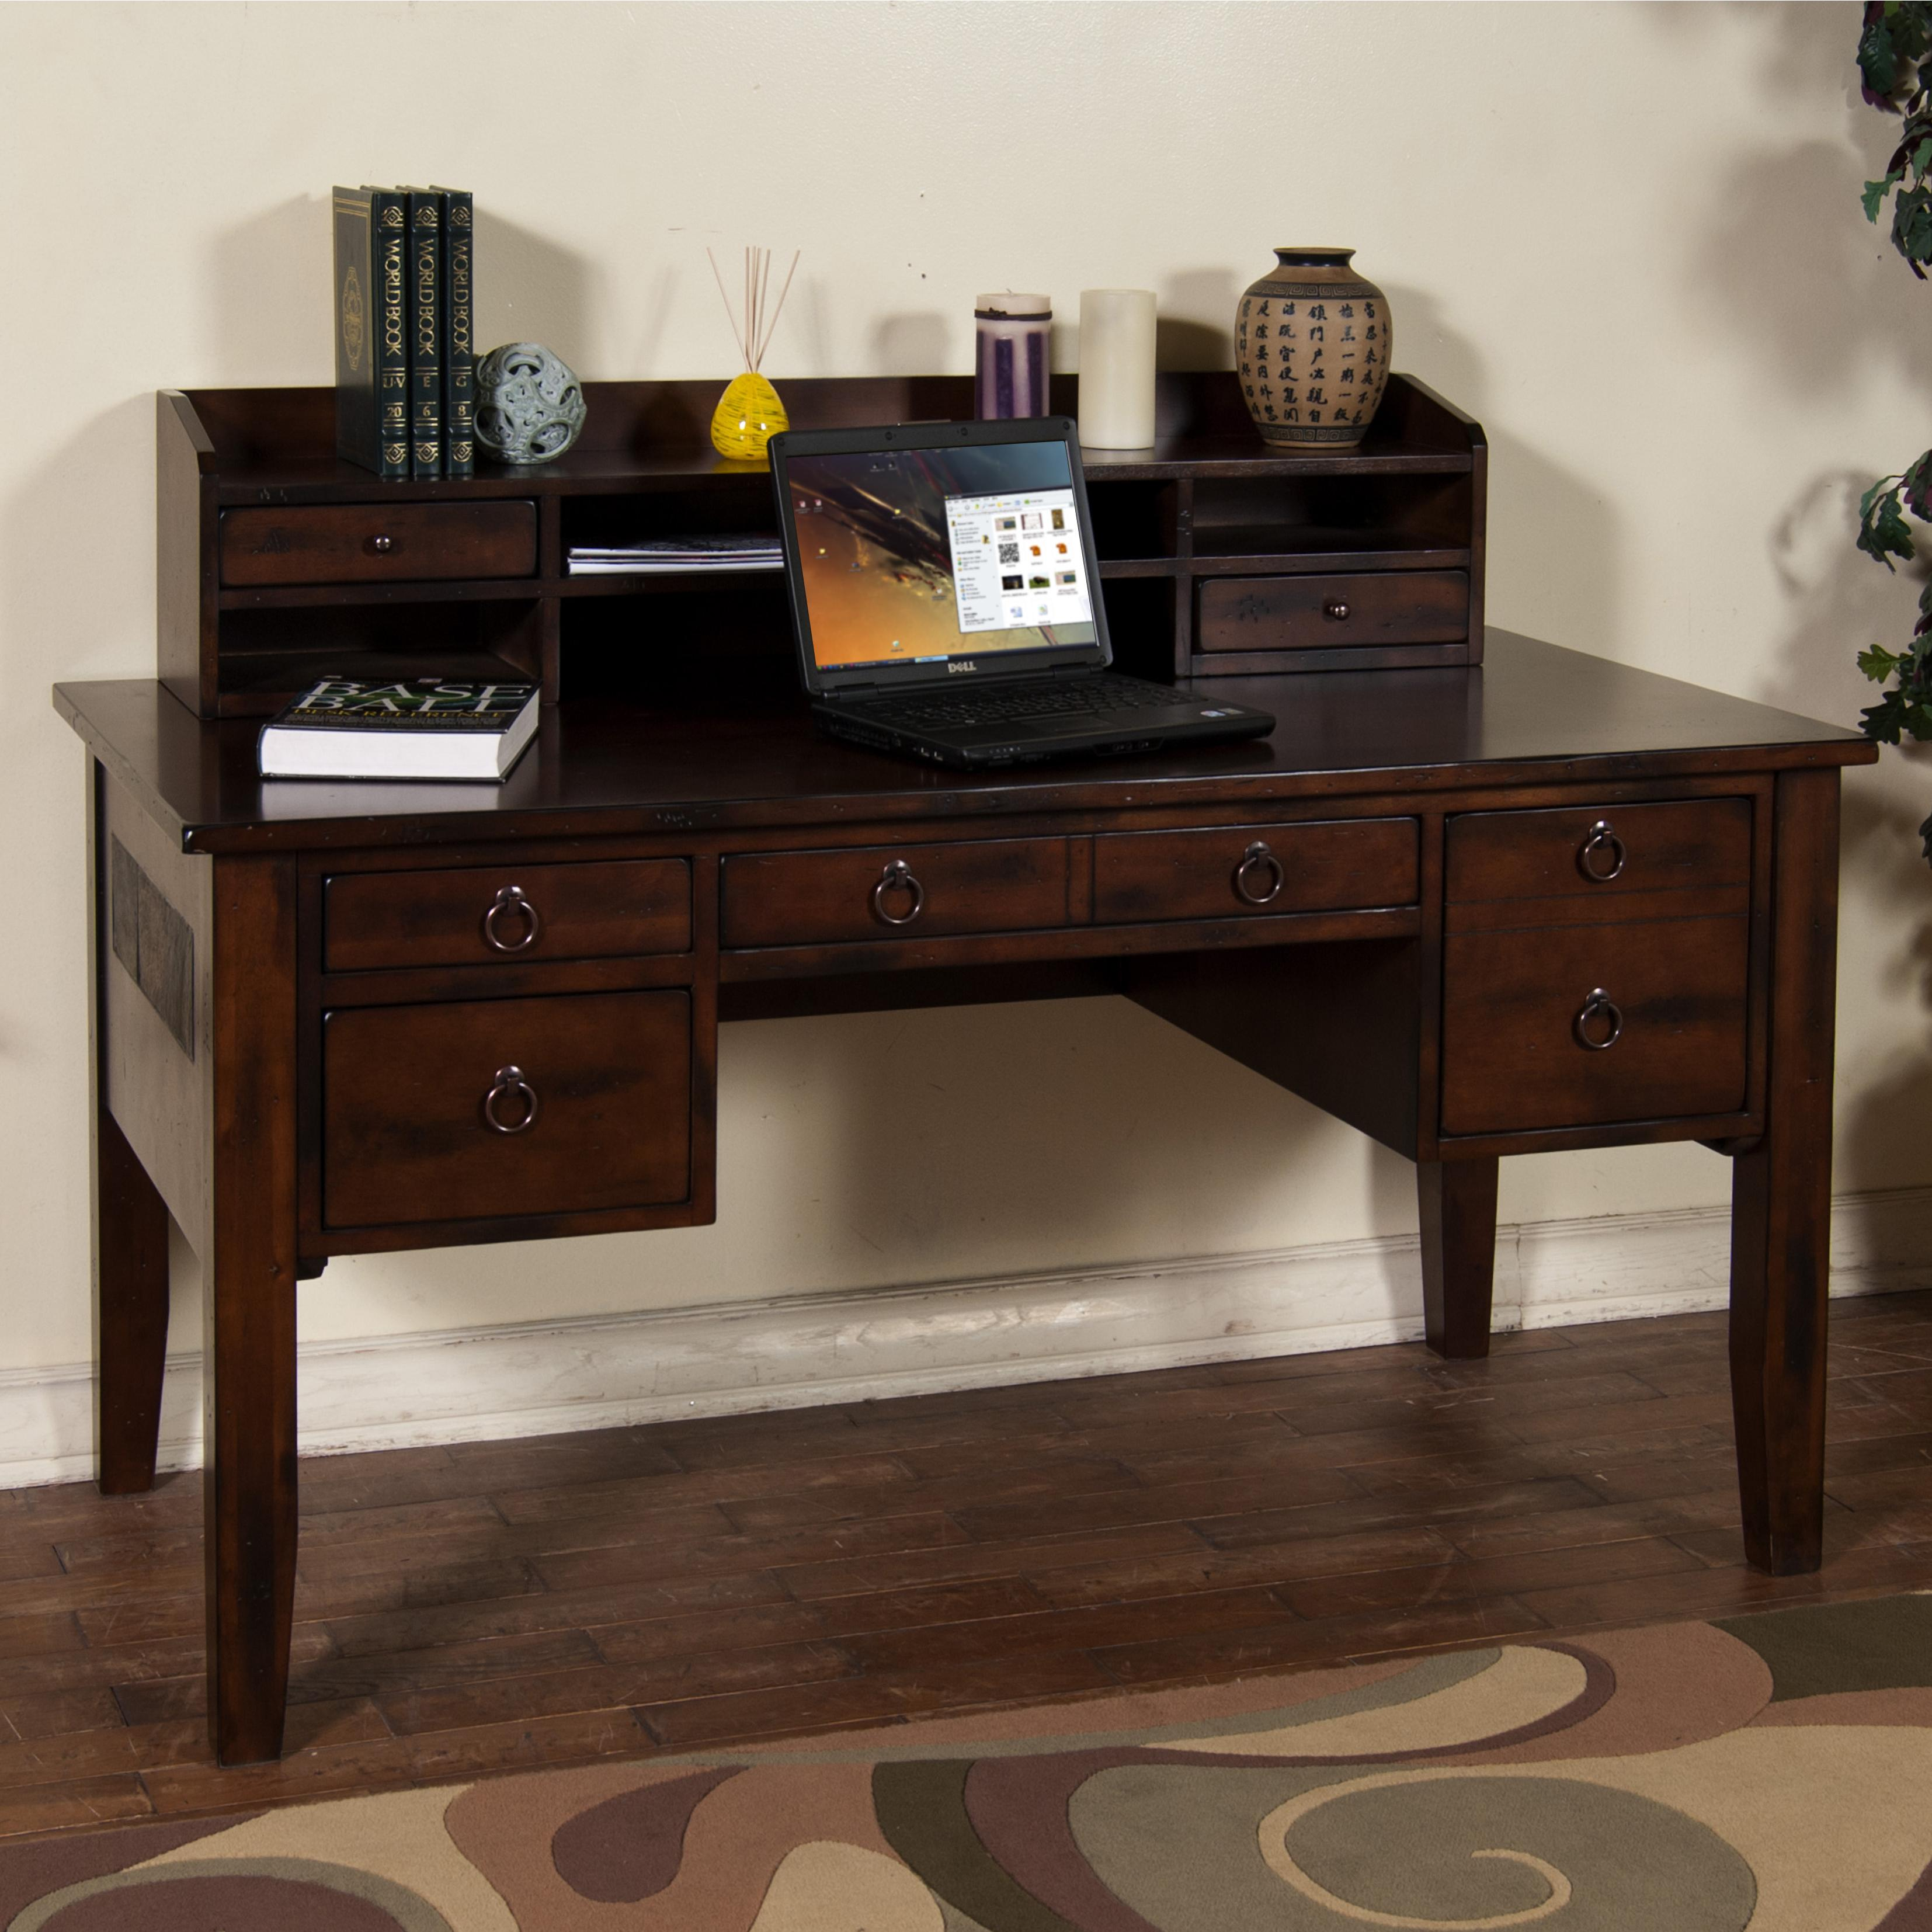 Desks With Drawers Santa Fe Writing Desk With Keyboard Drawer Hutch By Sunny Designs At Suburban Furniture